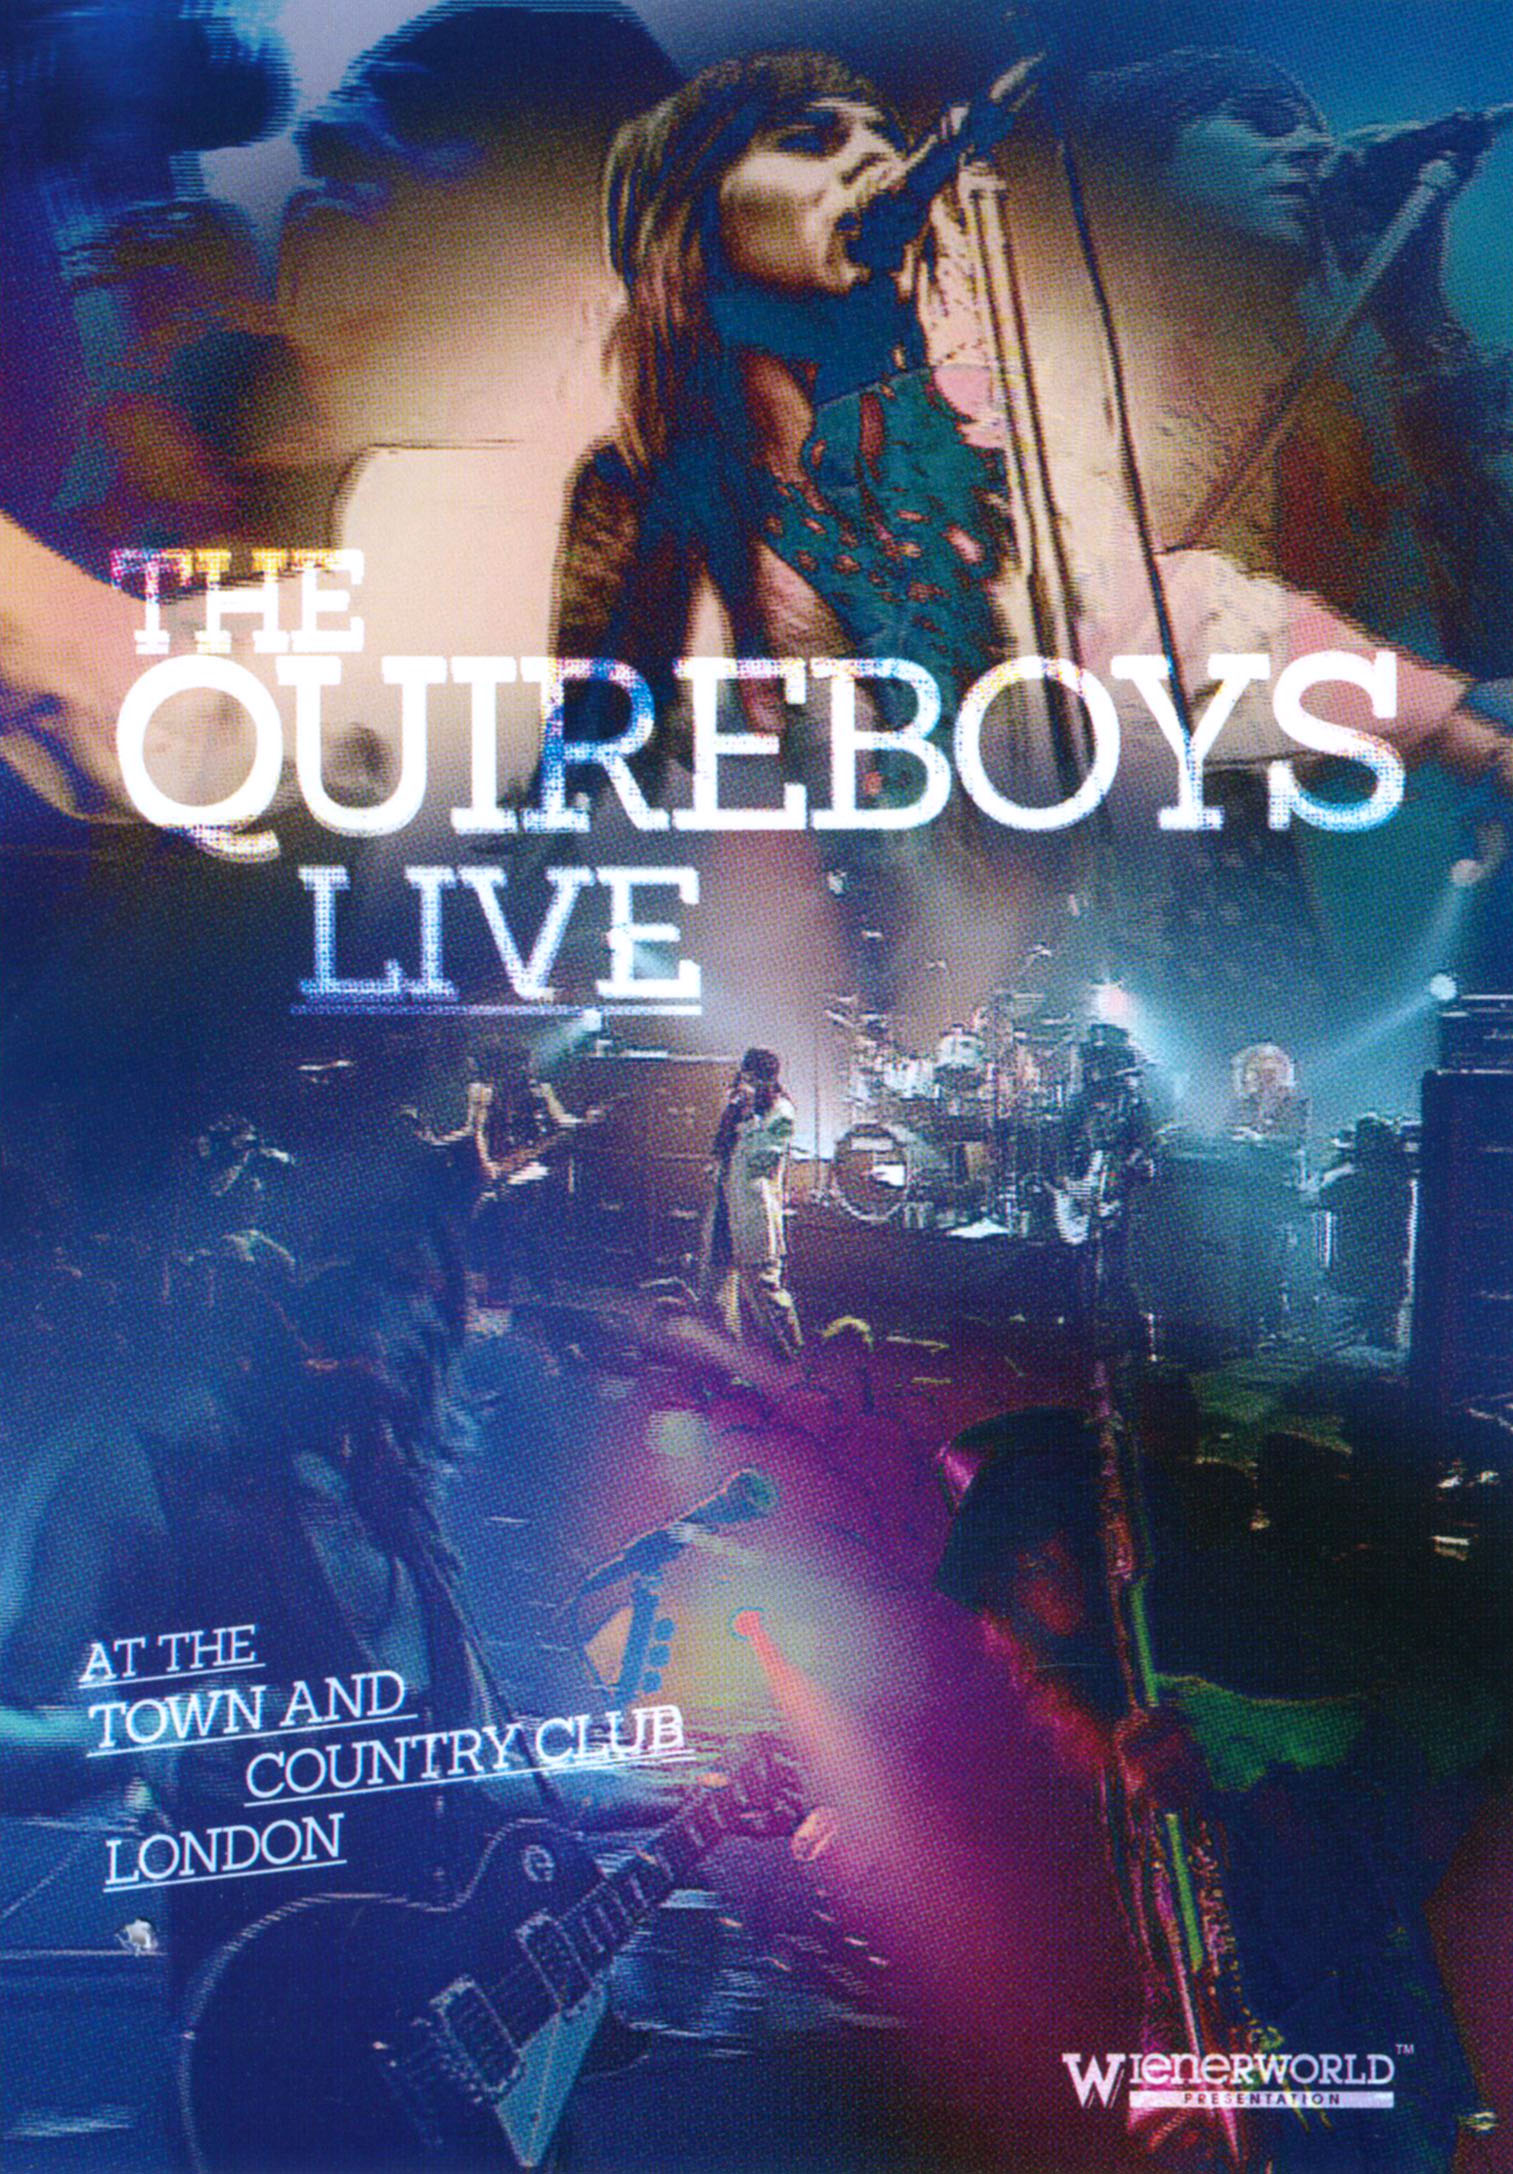 The Quireboys: Live at the Town and Country Club, London